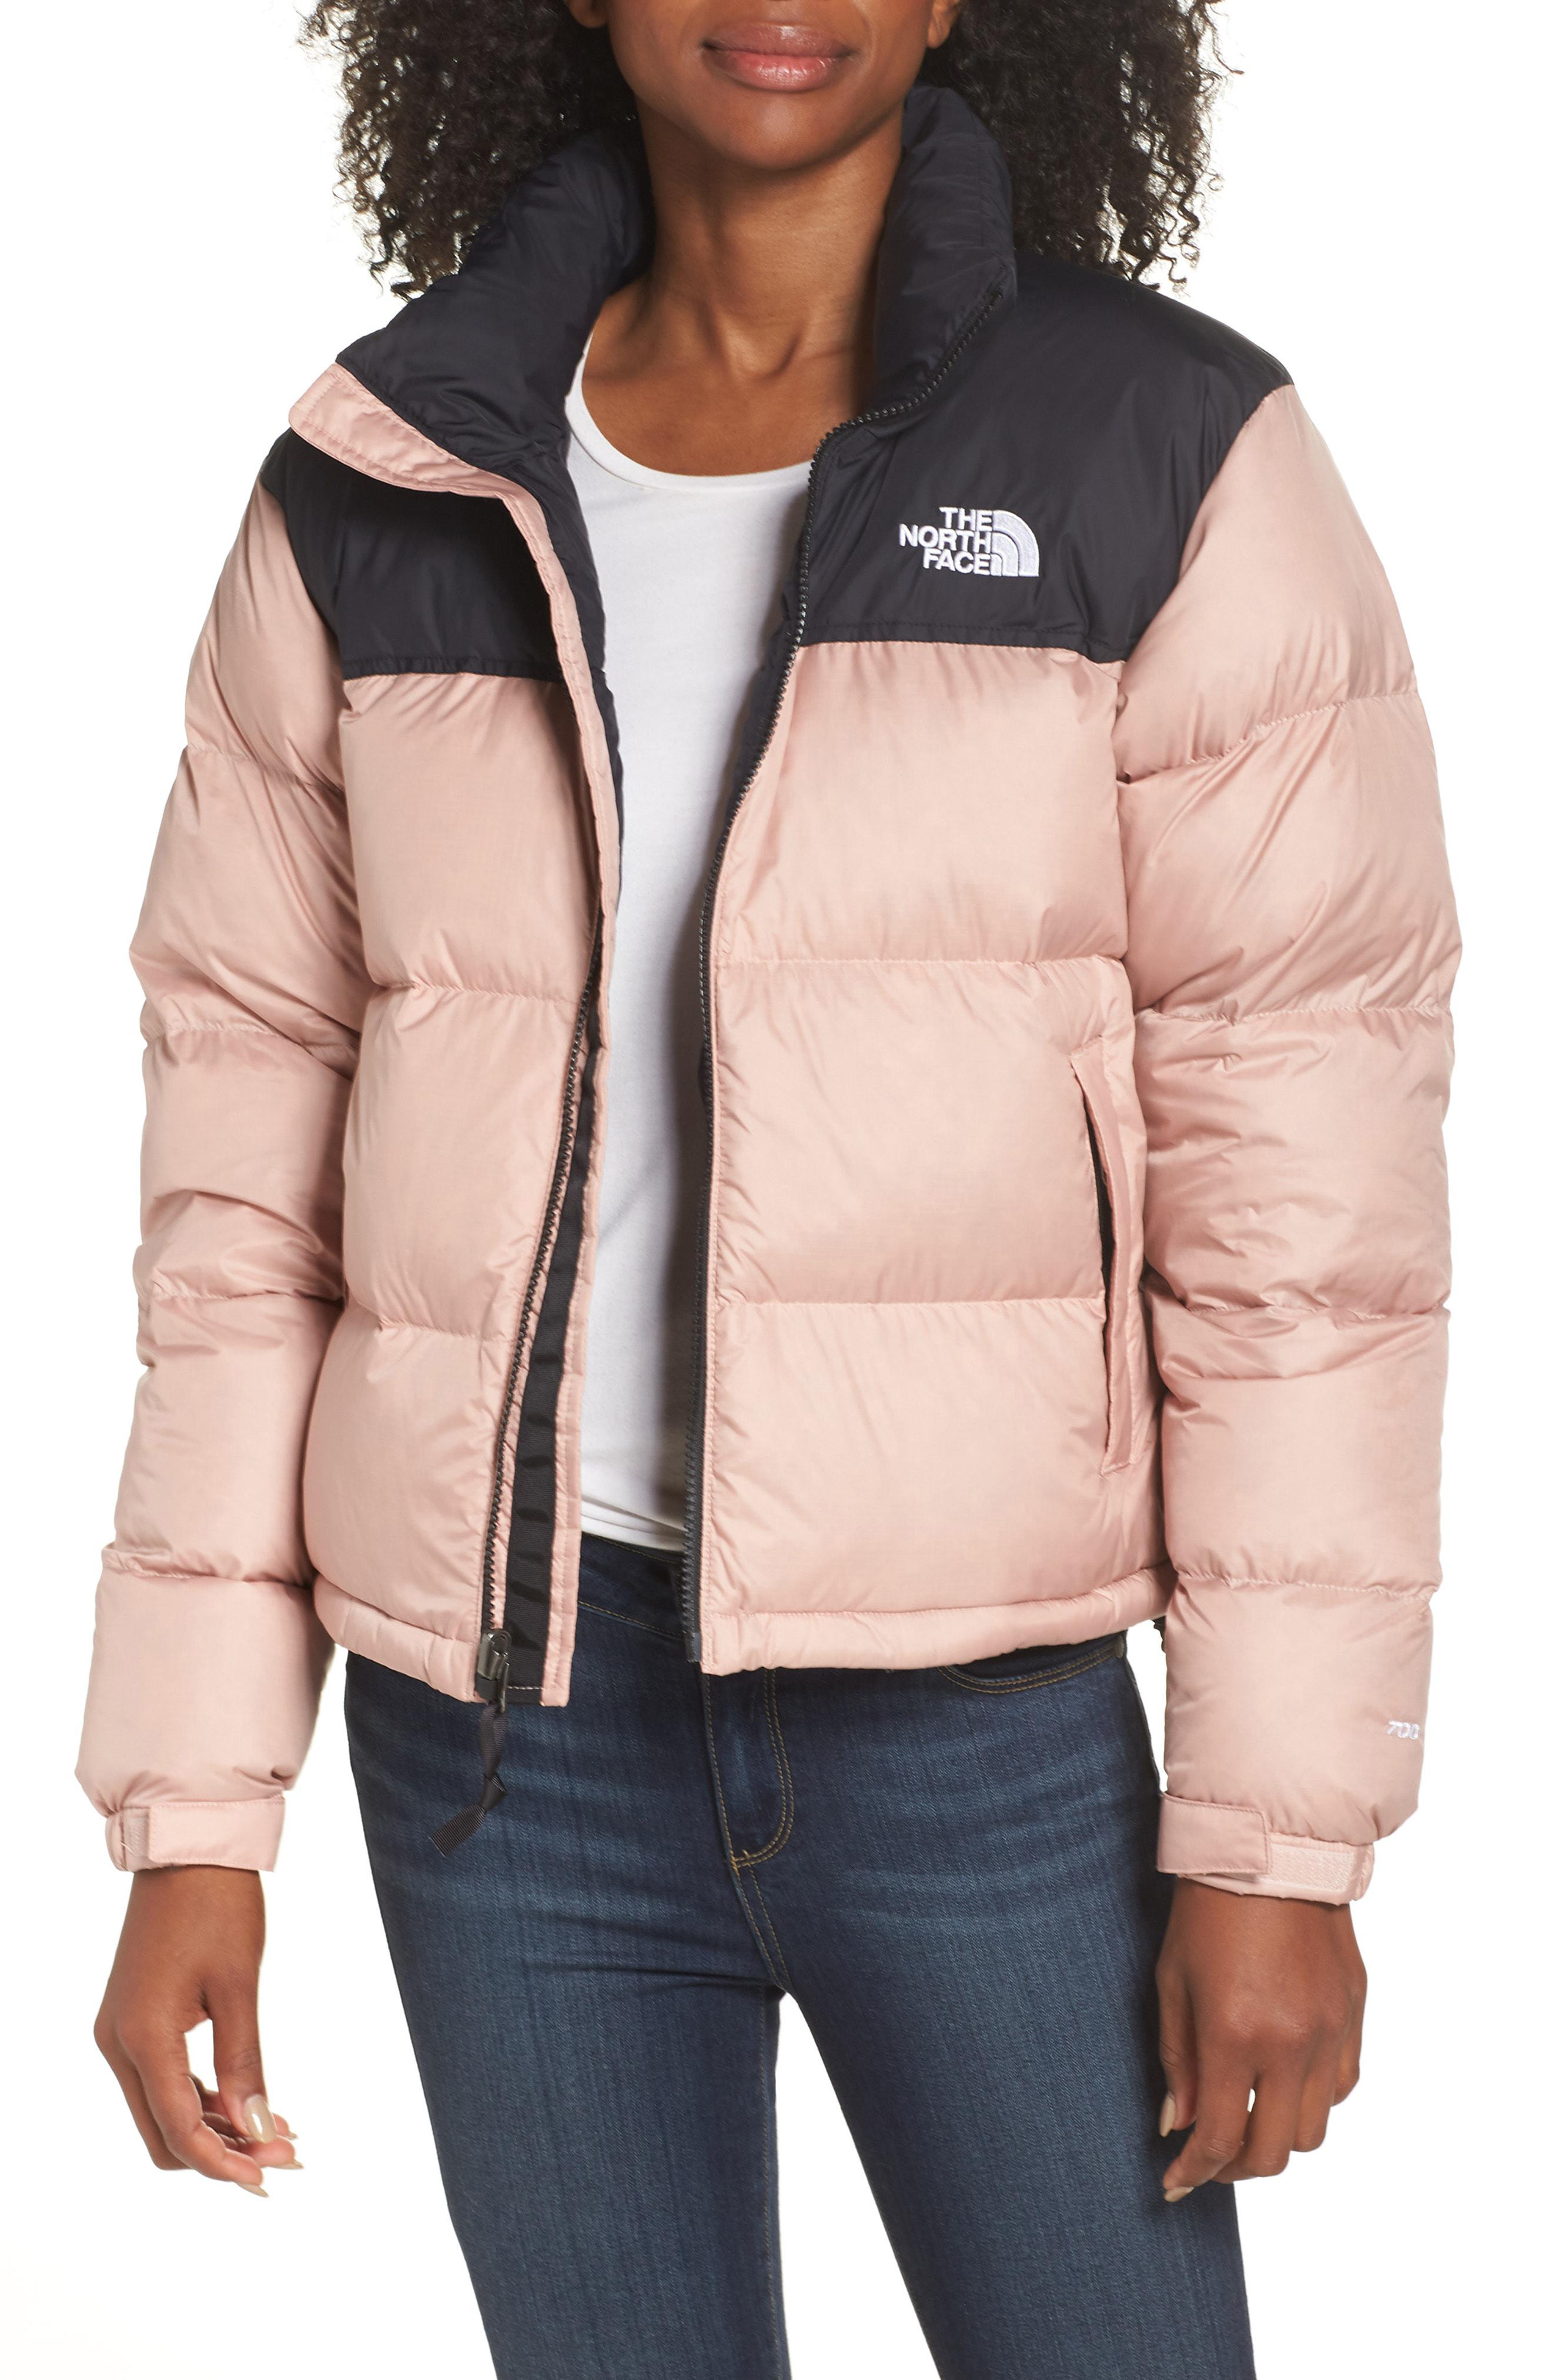 Lyst - The North Face Nuptse 1996 Packable Quilted Down Jacket in Black 29ce0e922